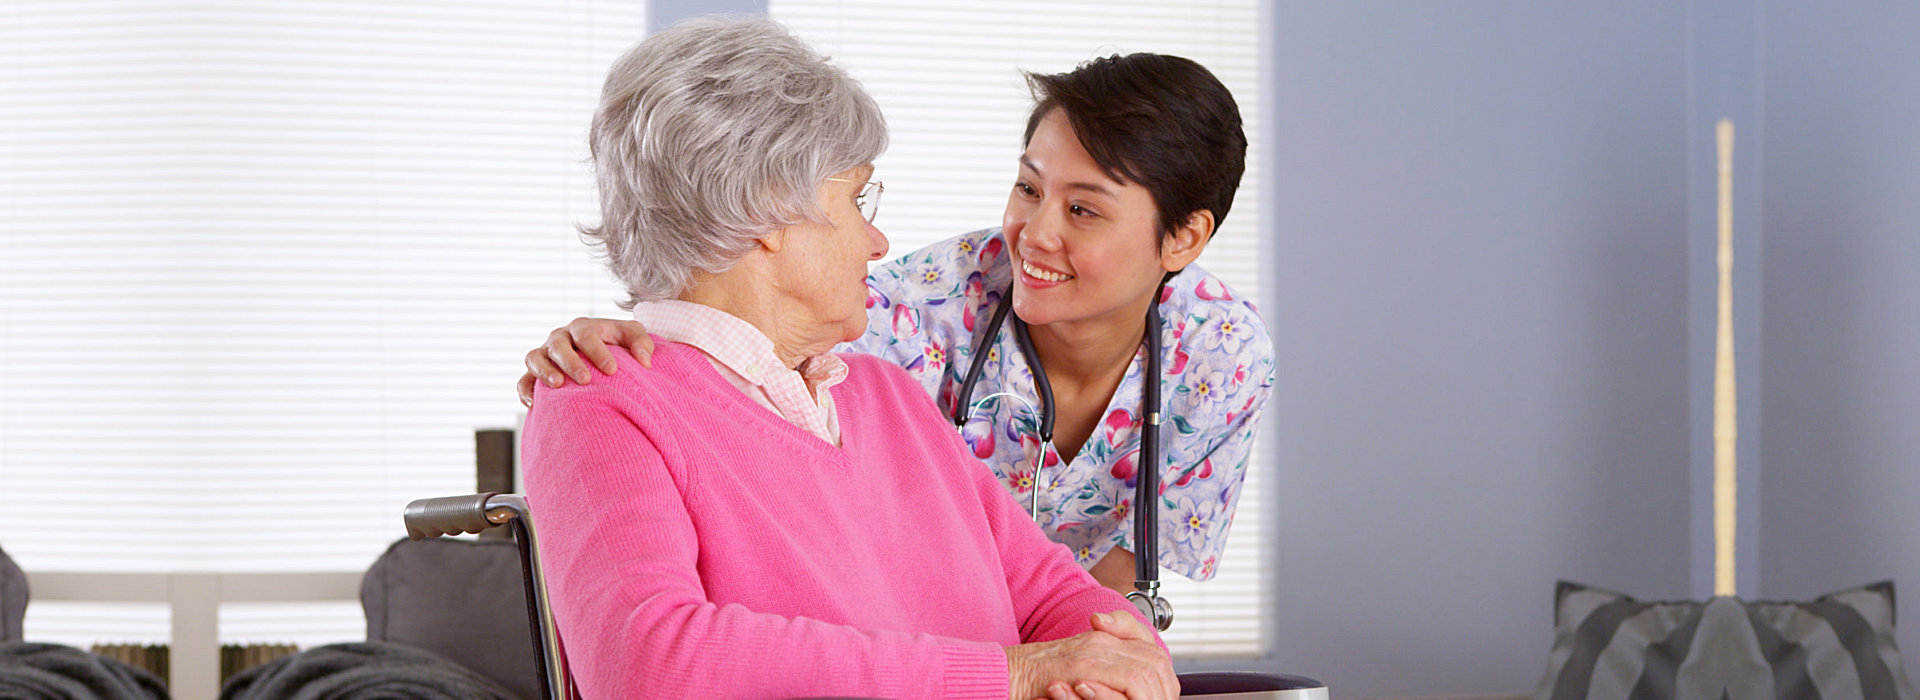 caregiver talking to an elderly woman